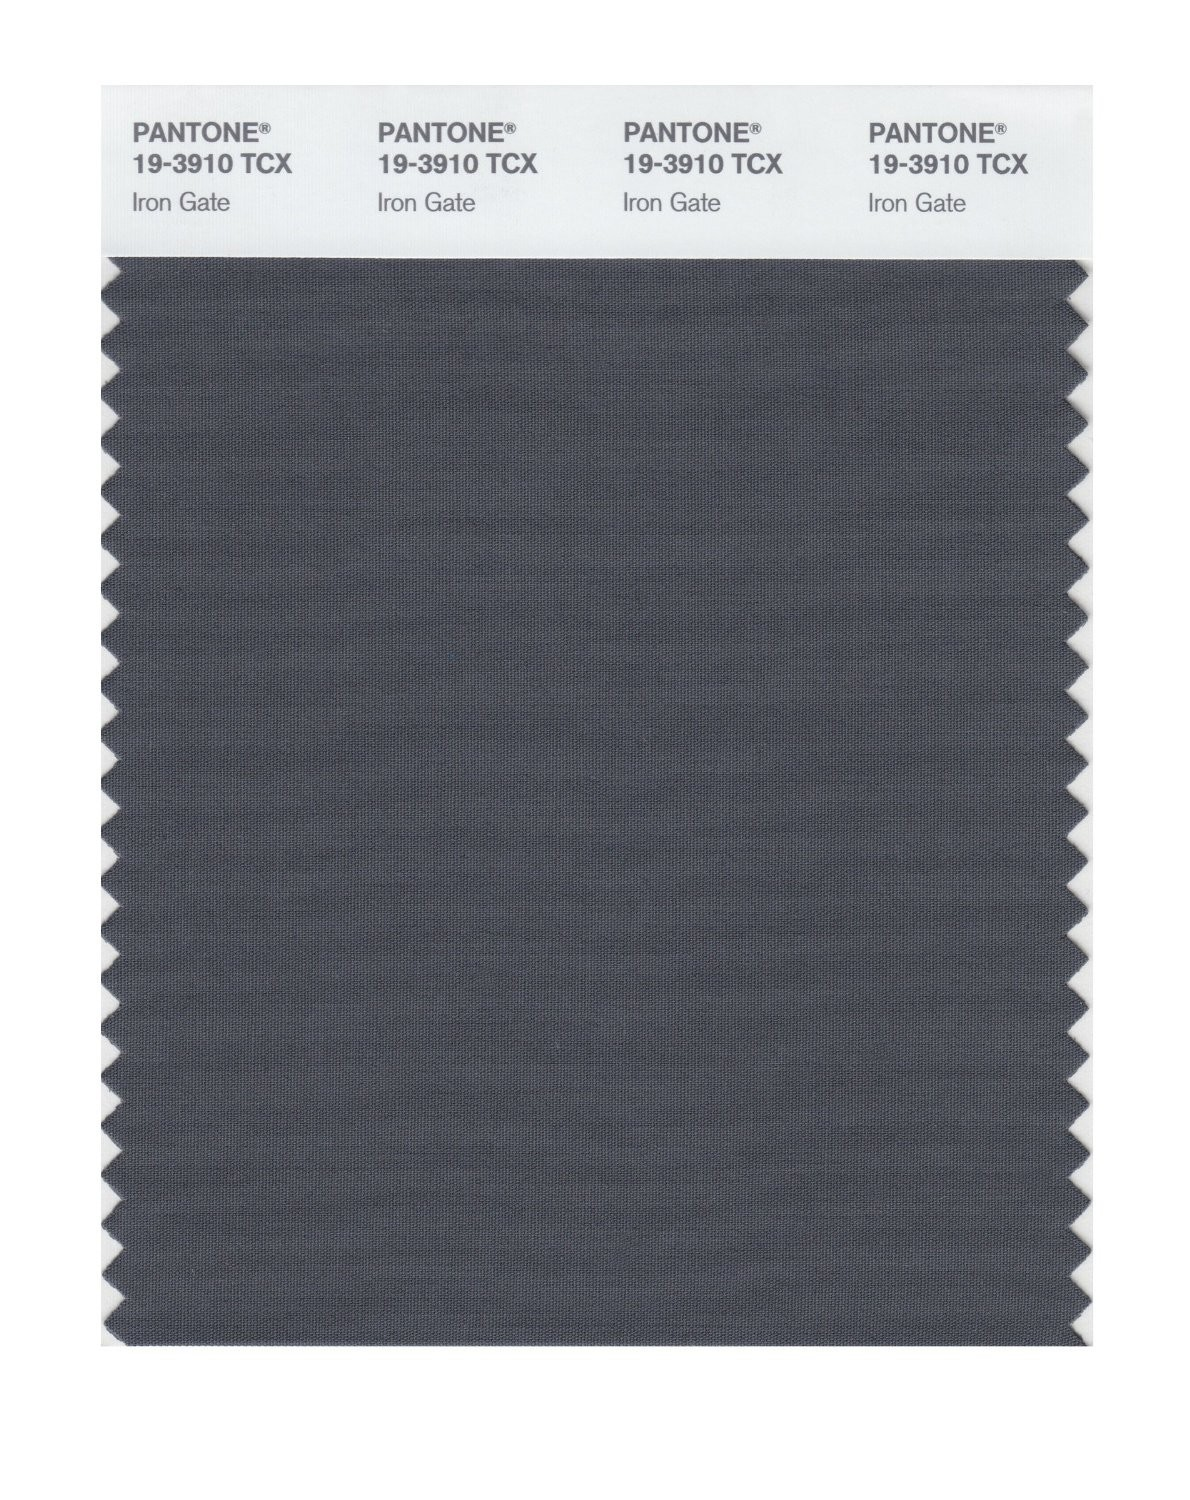 Pantone 19-3910 TCX Swatch Card Iron Gate